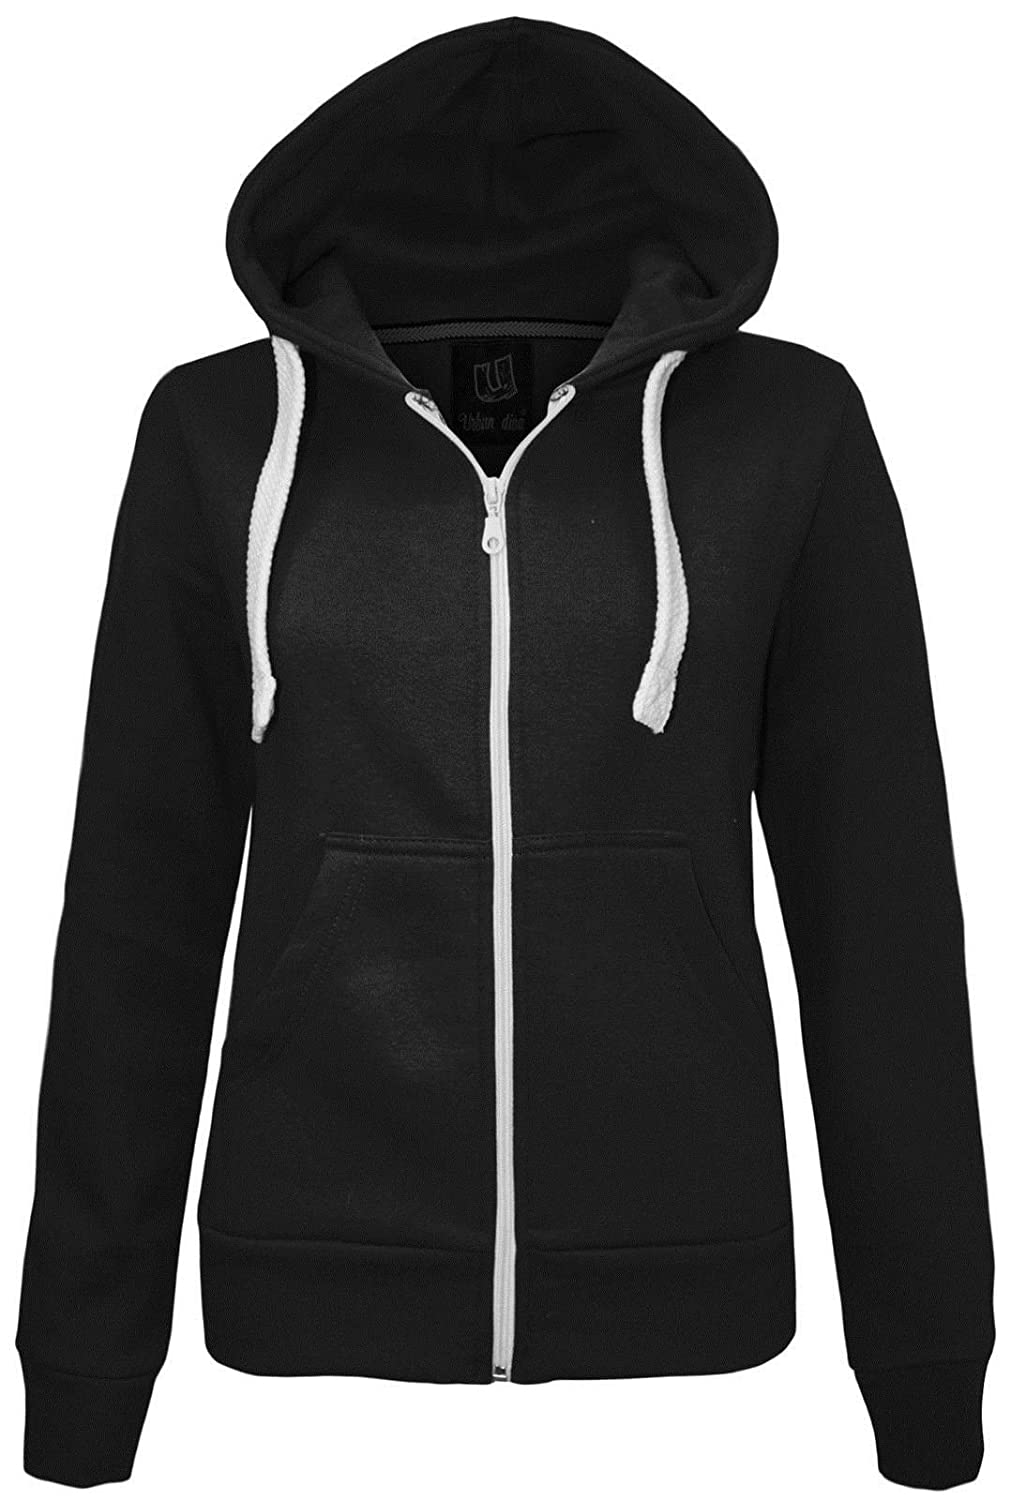 NEW LADIES WOMENS PLAIN HOODIE HOODED ZIP TOP ZIPPER SWEATSHIRT ...